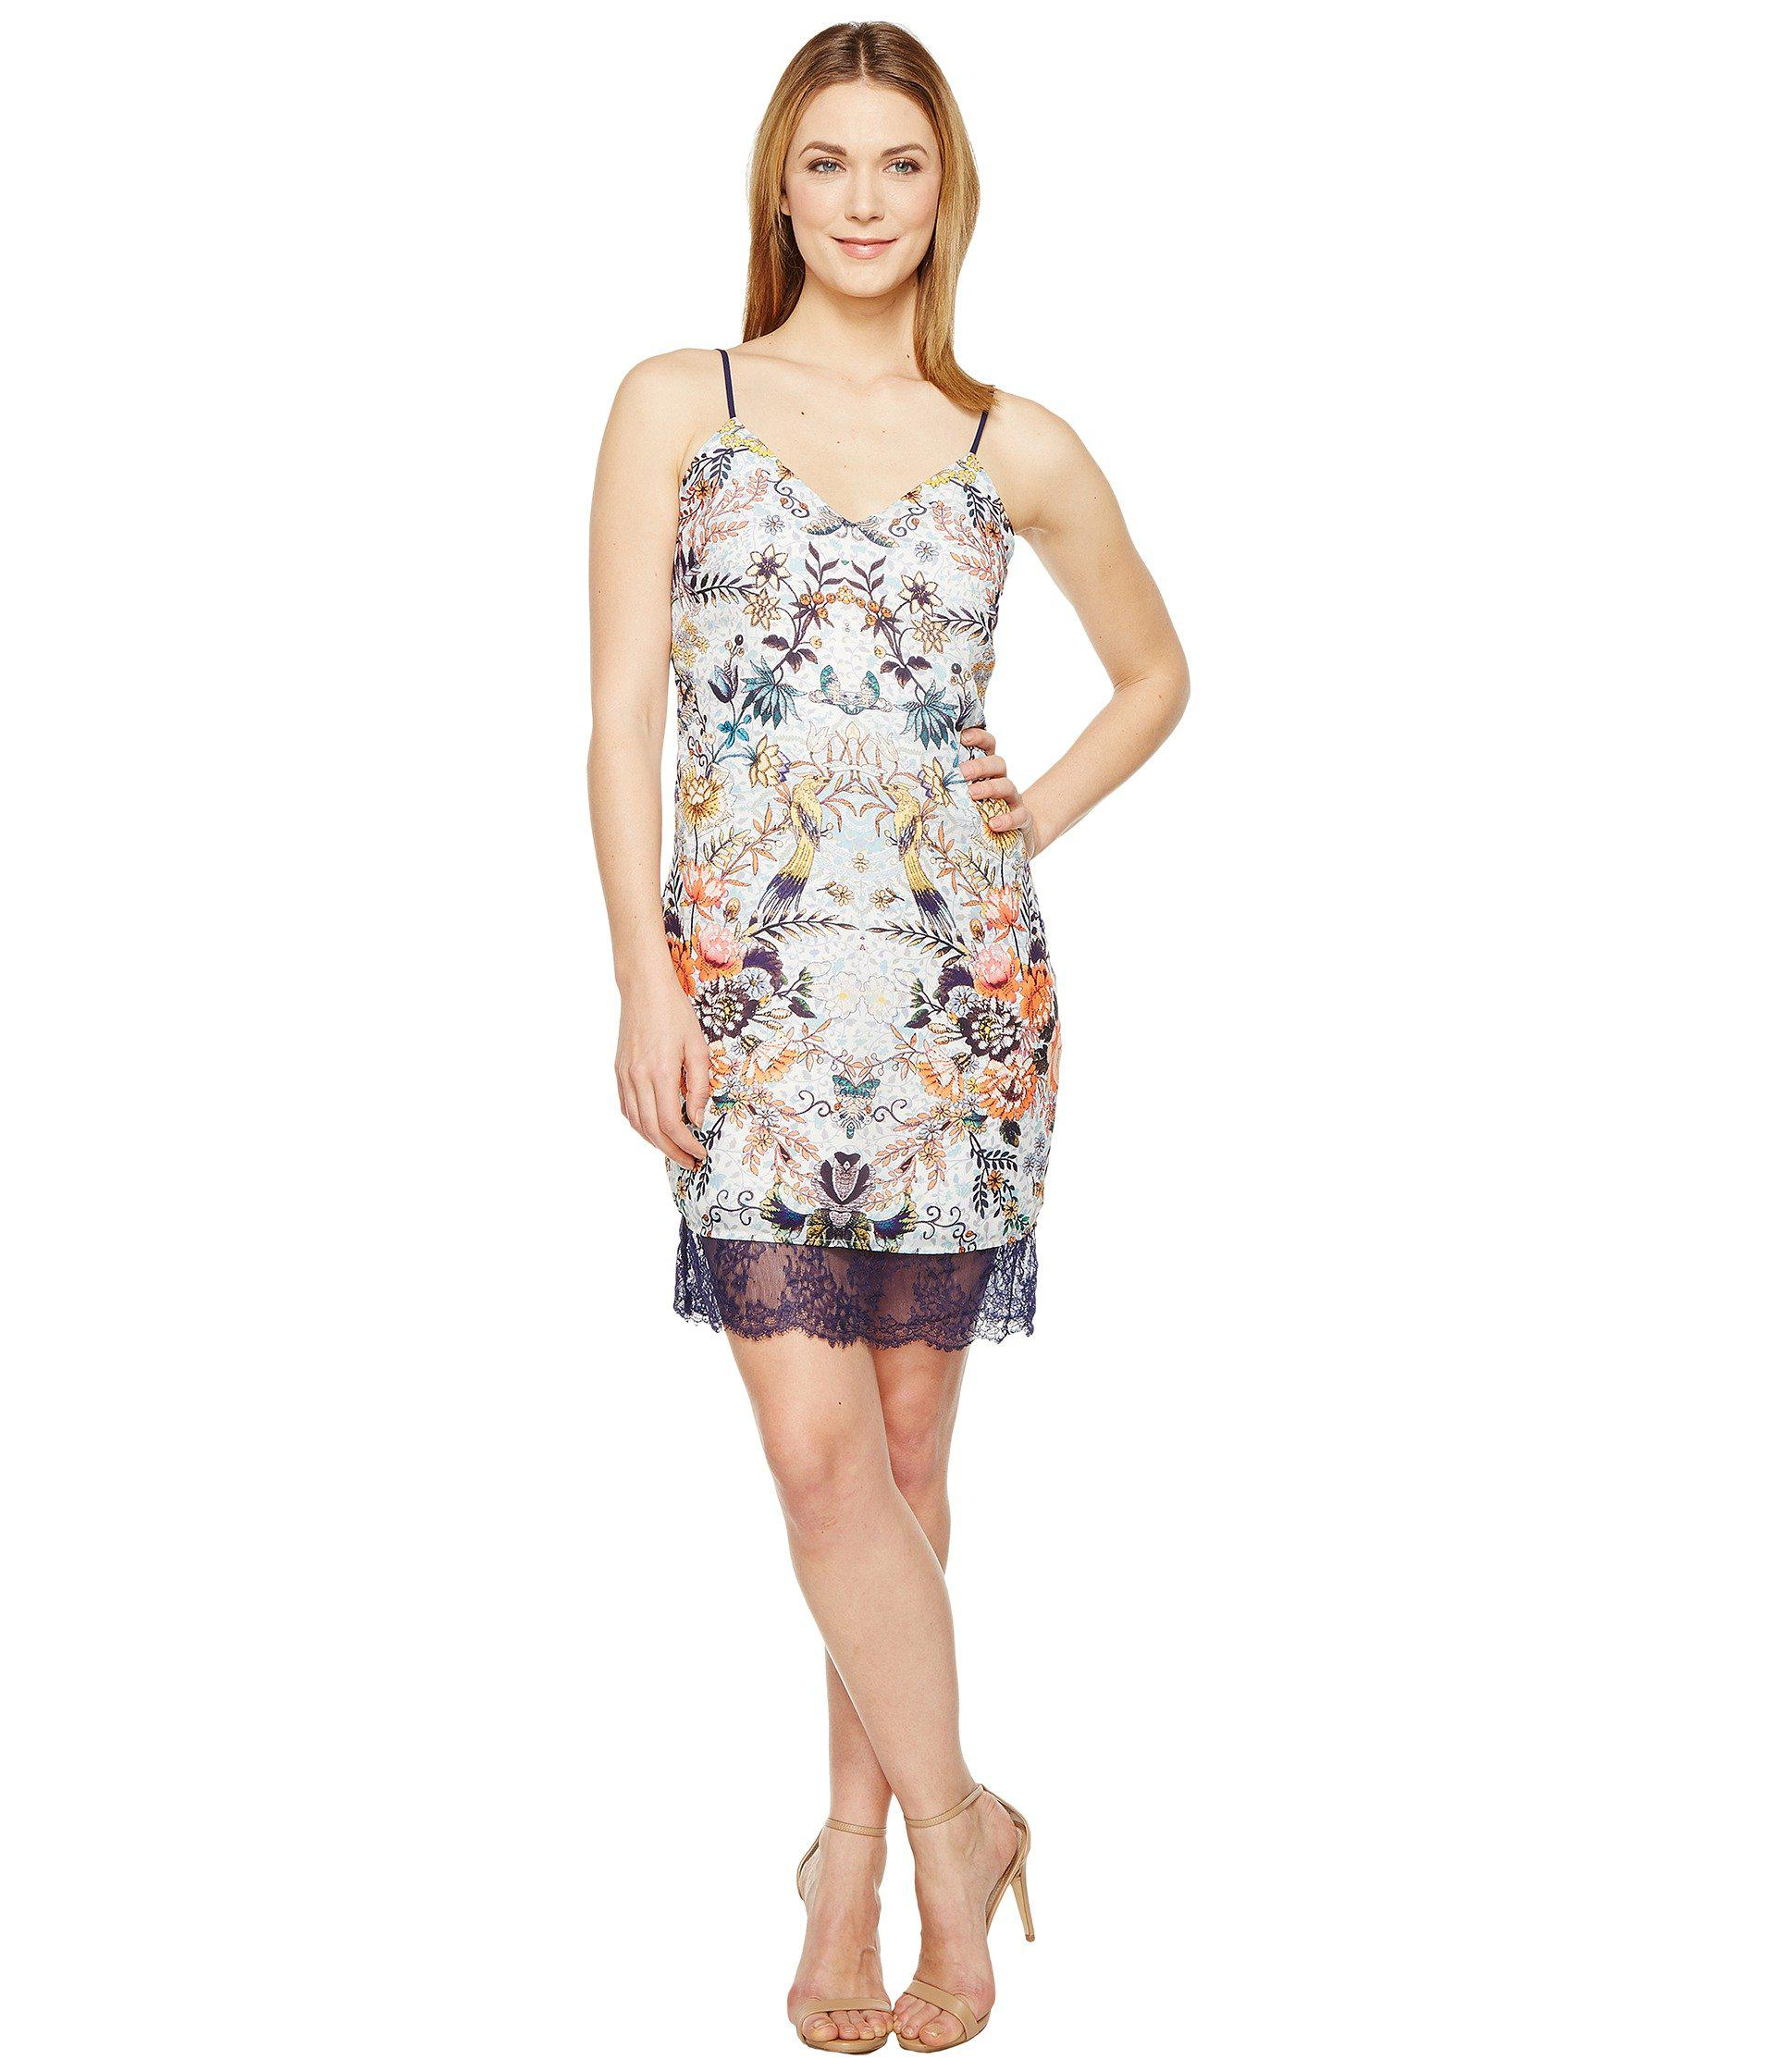 6838c14d60571 Lyst - Adelyn Rae Lydia Woven Printed Slip Dress in White - Save 53%